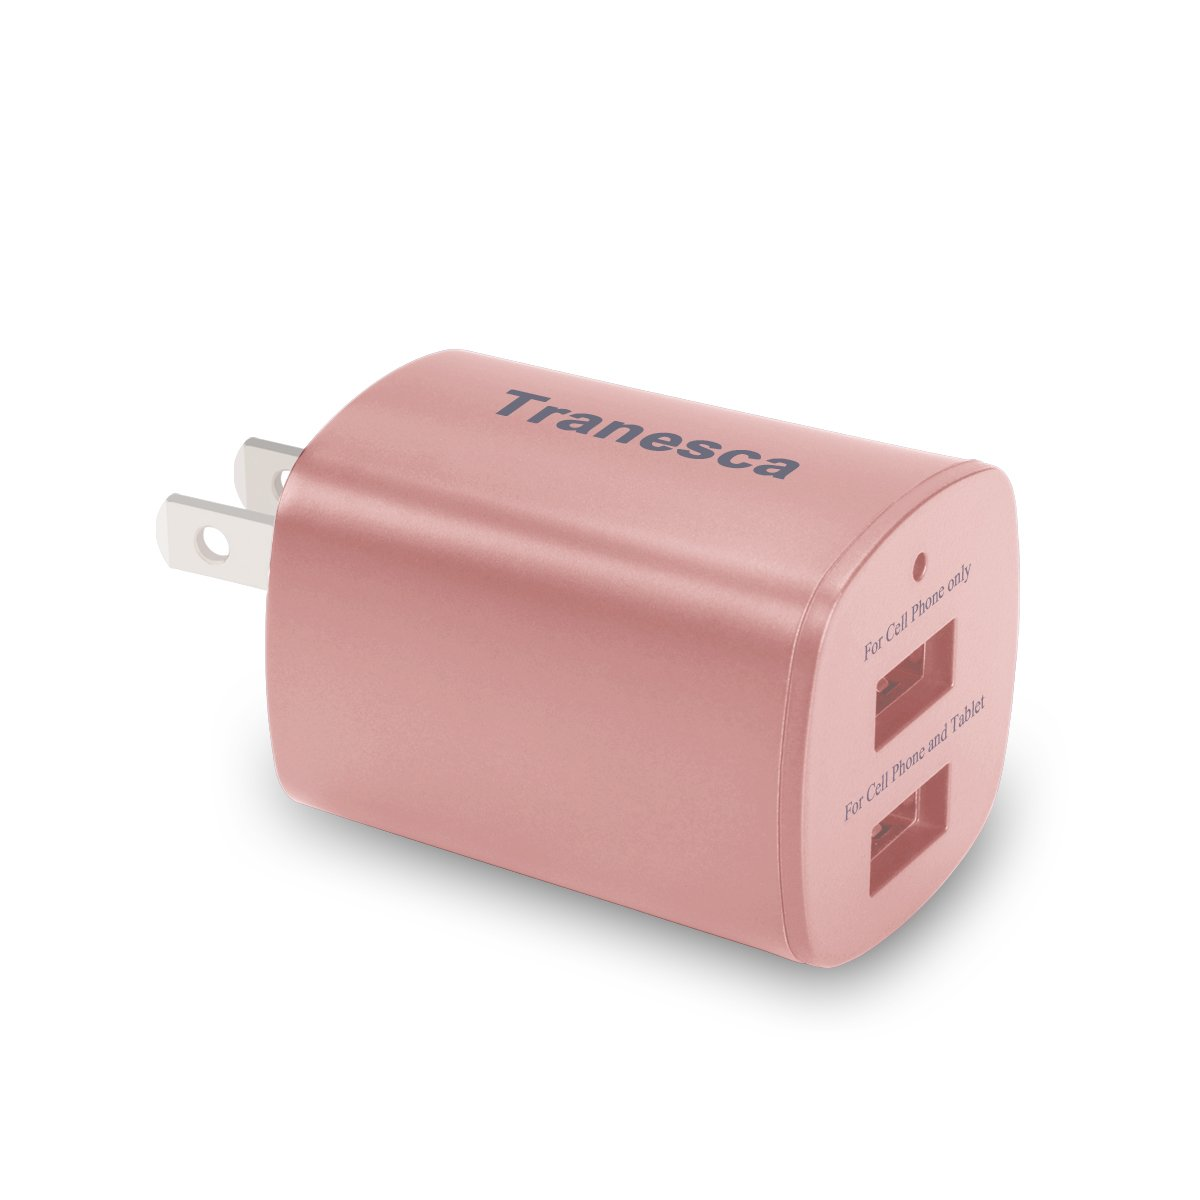 Iphone Wall Charger: Tranesca 2-port USB Travel Wall Charger For IPhone 7/7